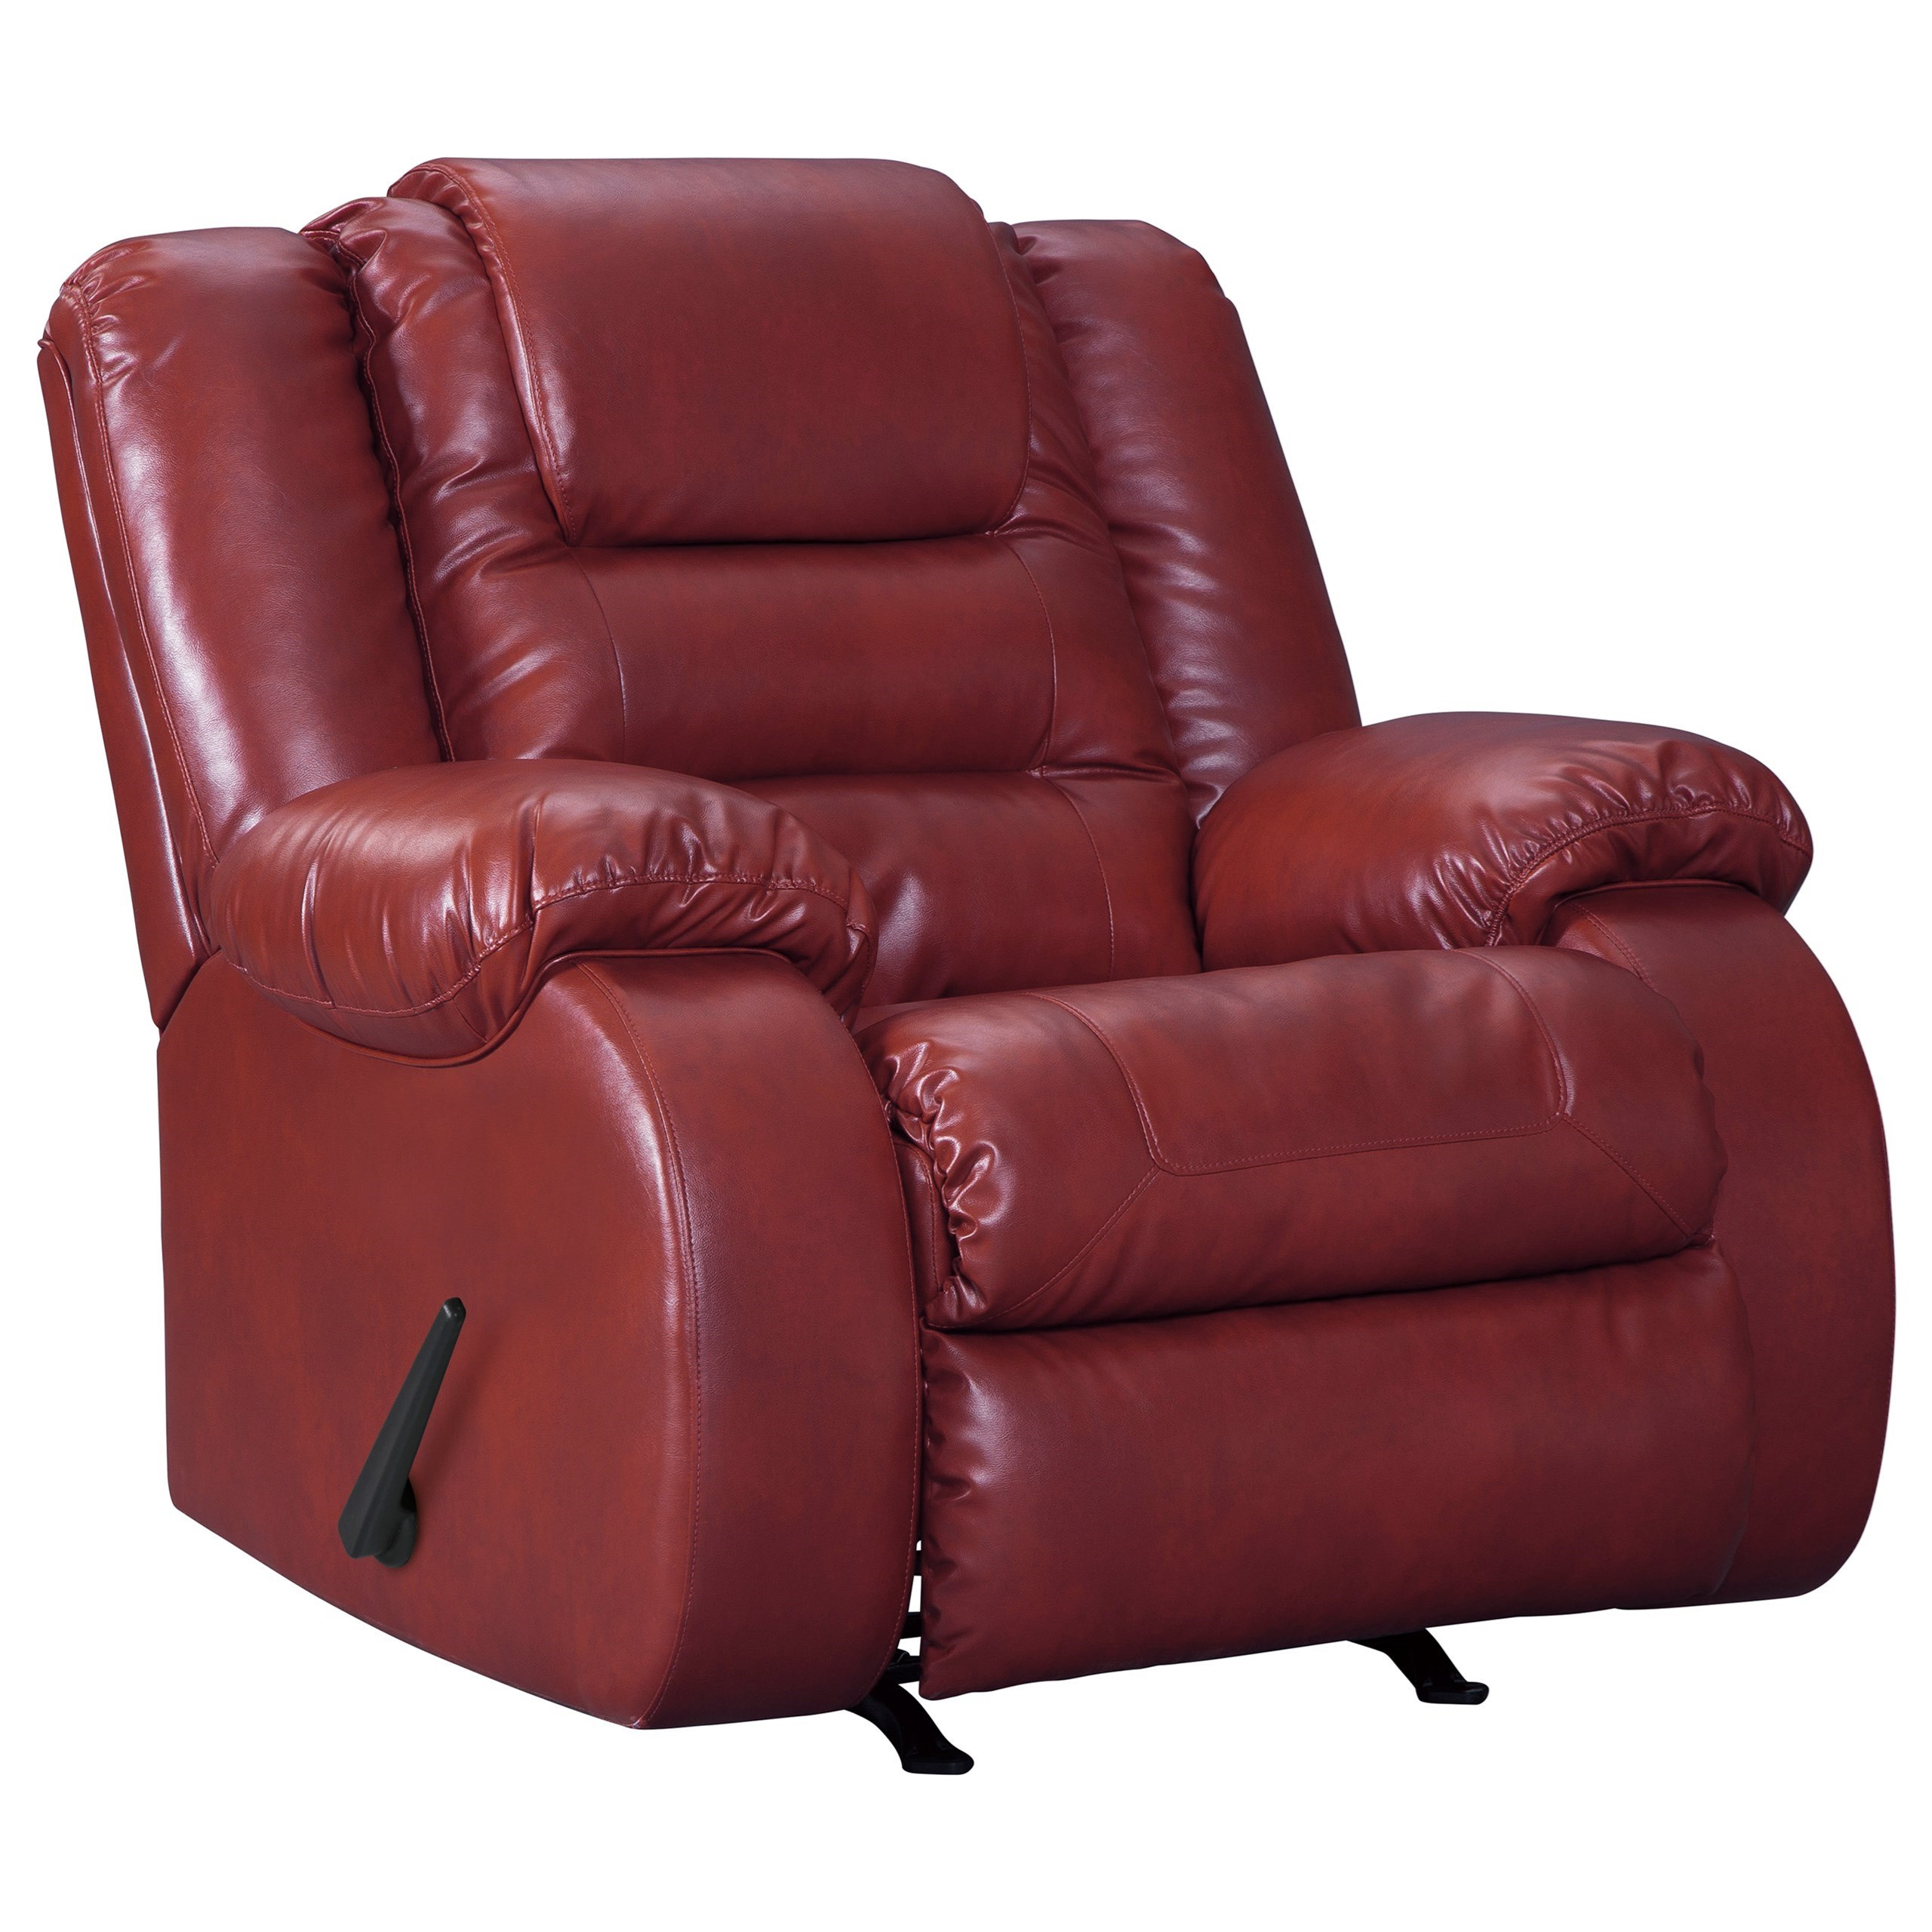 Vacherie Rocker Recliner by Signature Design by Ashley at Value City Furniture